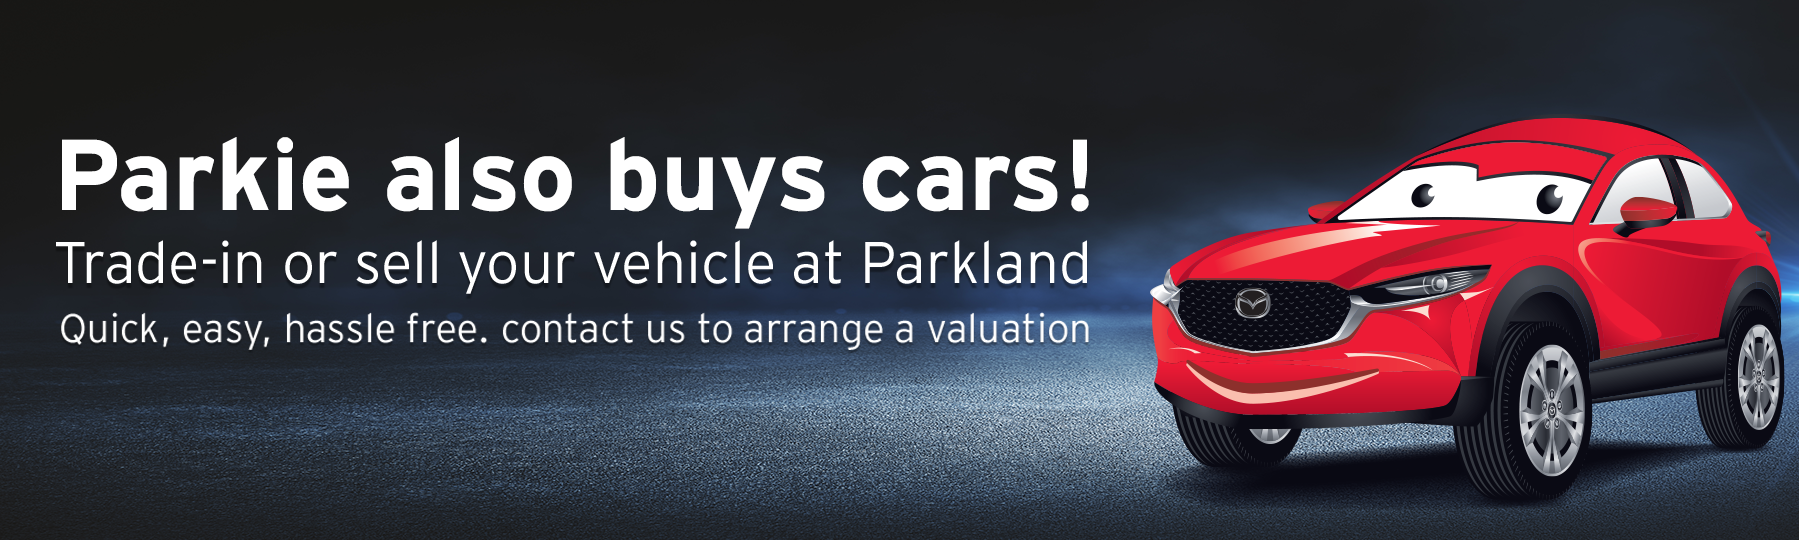 Trade-in or sell your car at Parkland Mazda